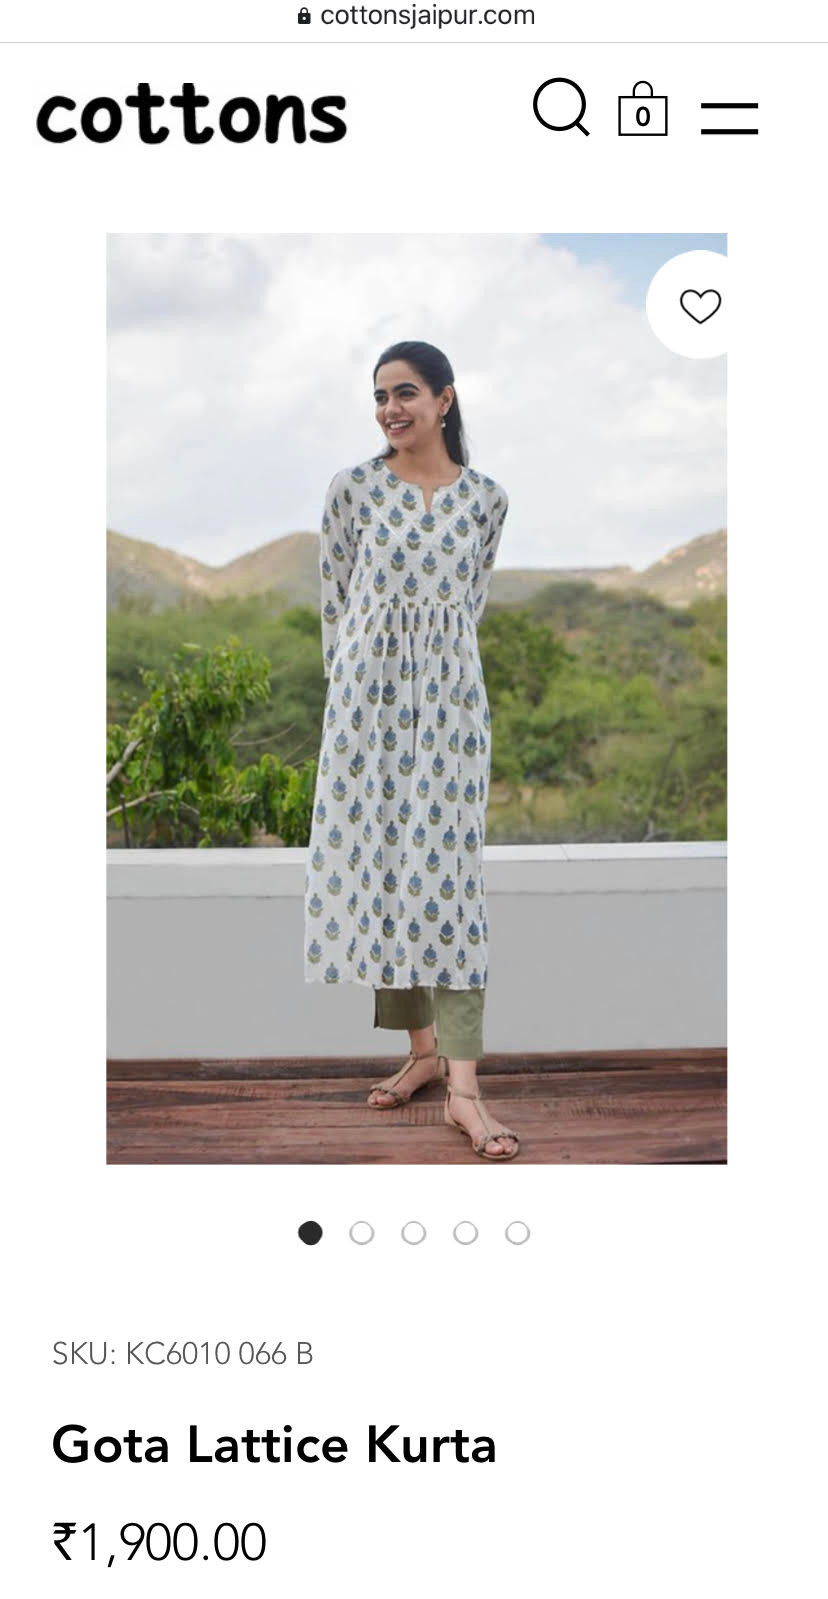 cottons jaipur mobile site kurta